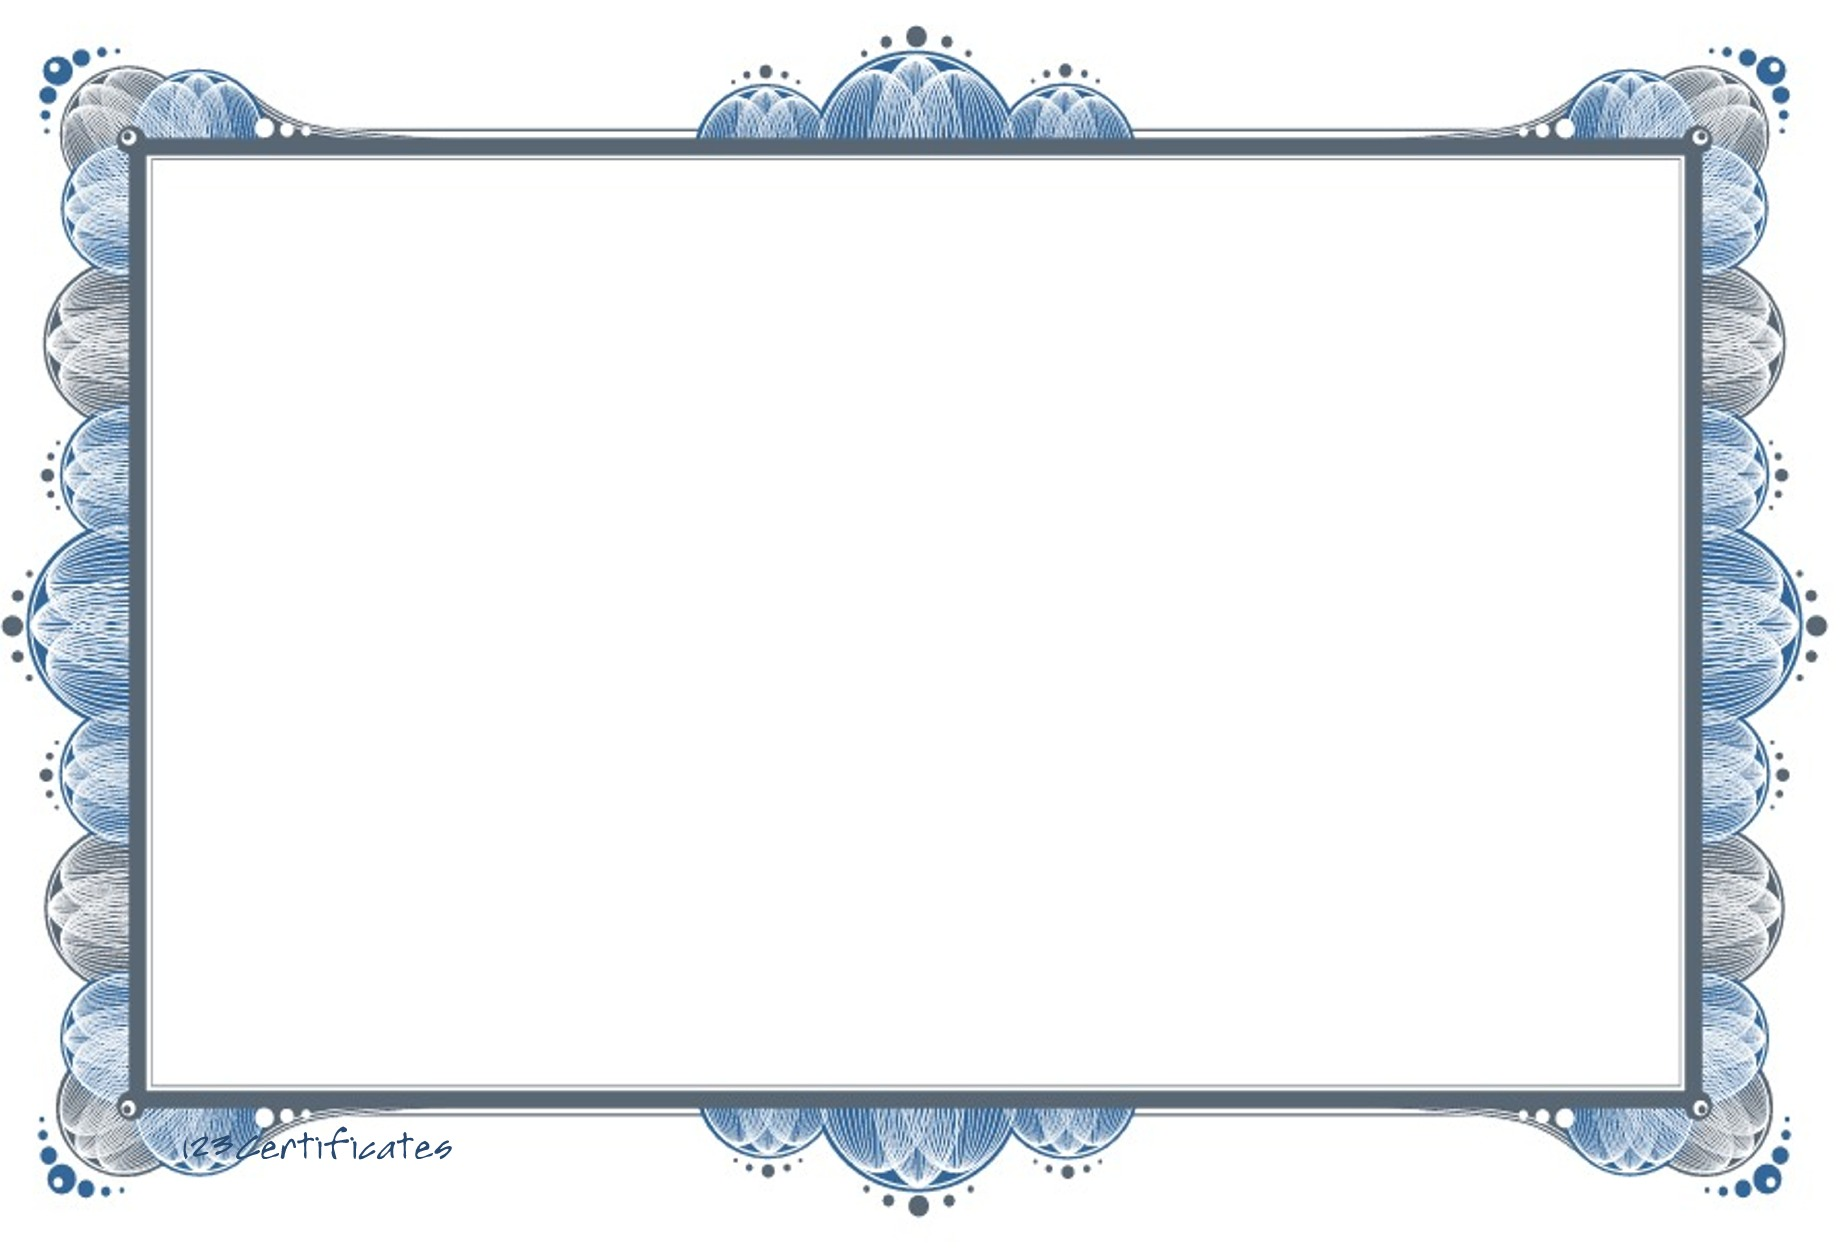 photo certificate border template free images